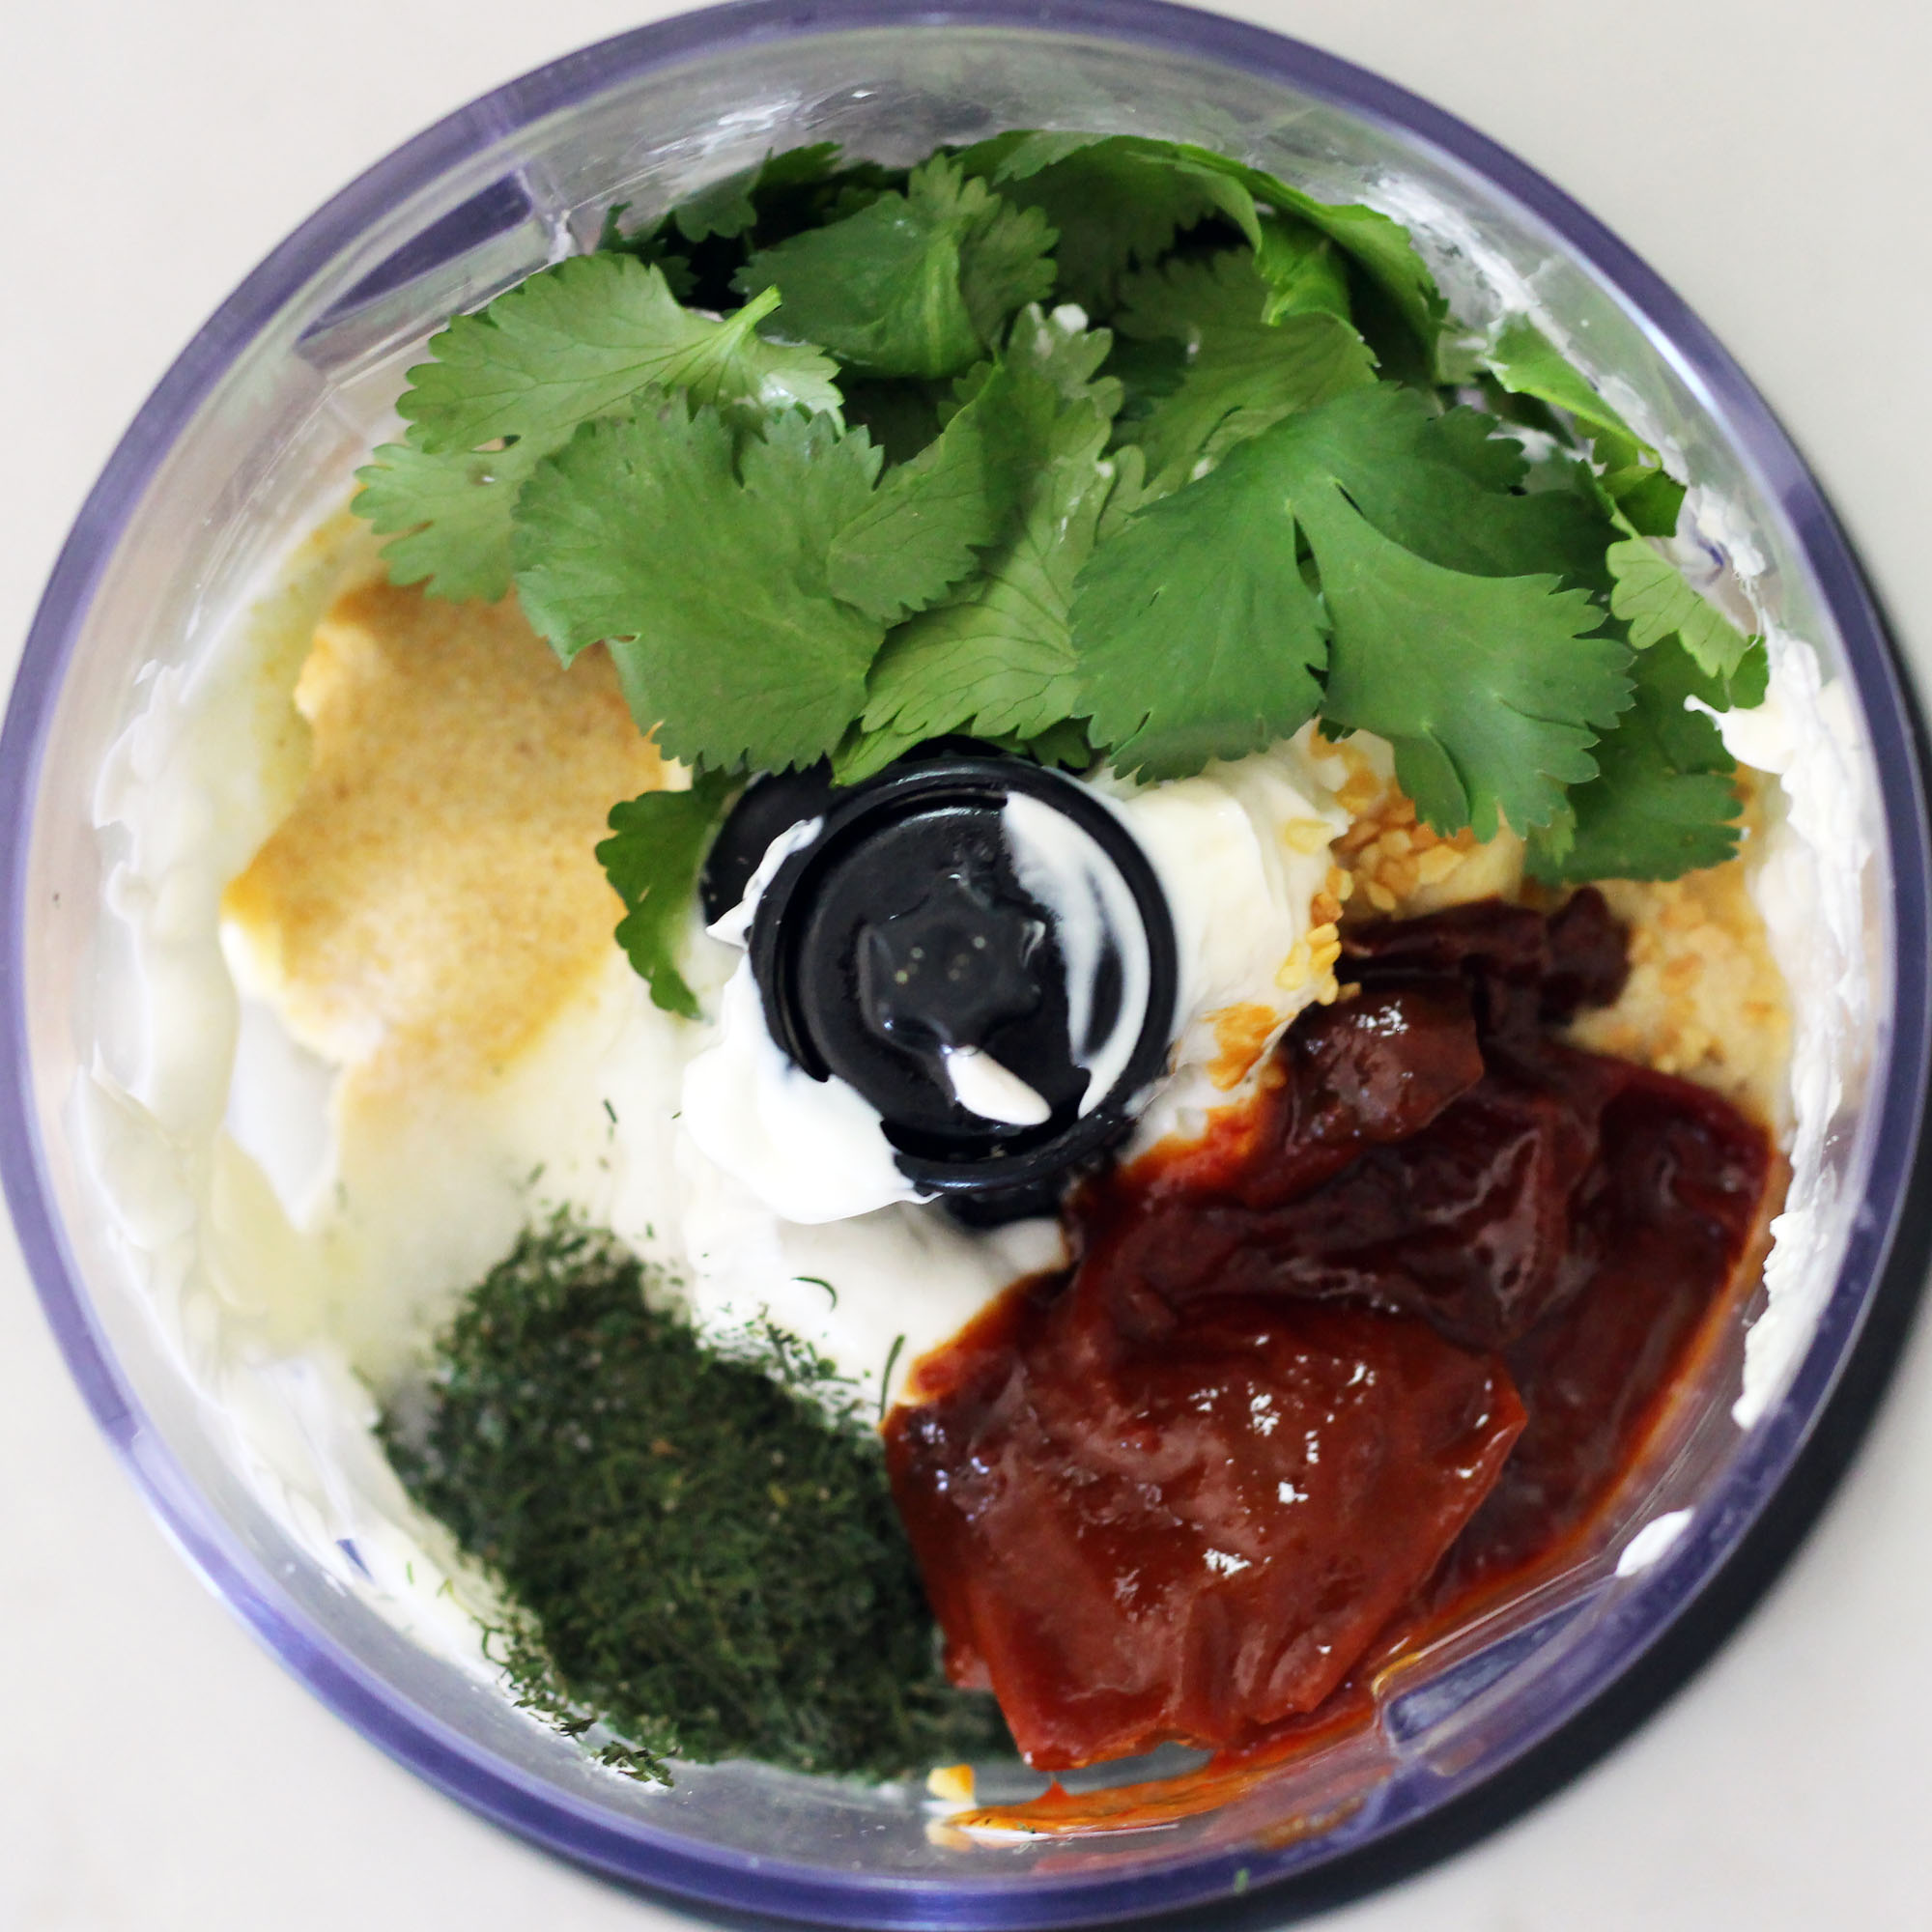 Chipotle Ranch Dressing Ingredients